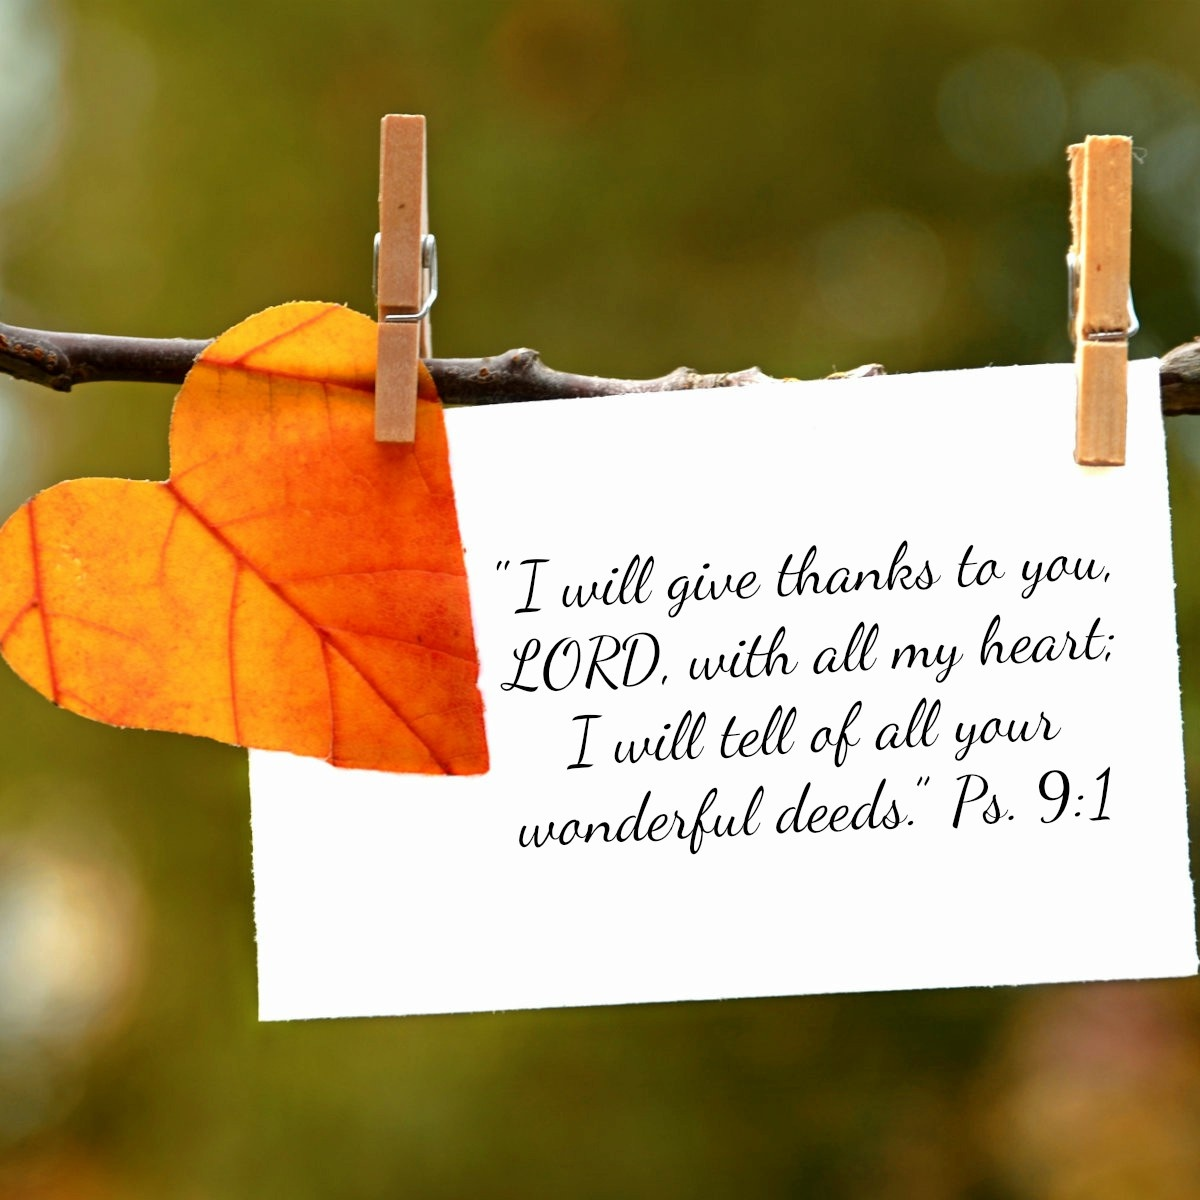 Thank You Lord For My Son Quotes: The Power Of A Grateful Heart: 21 Verses Of Thanks To God